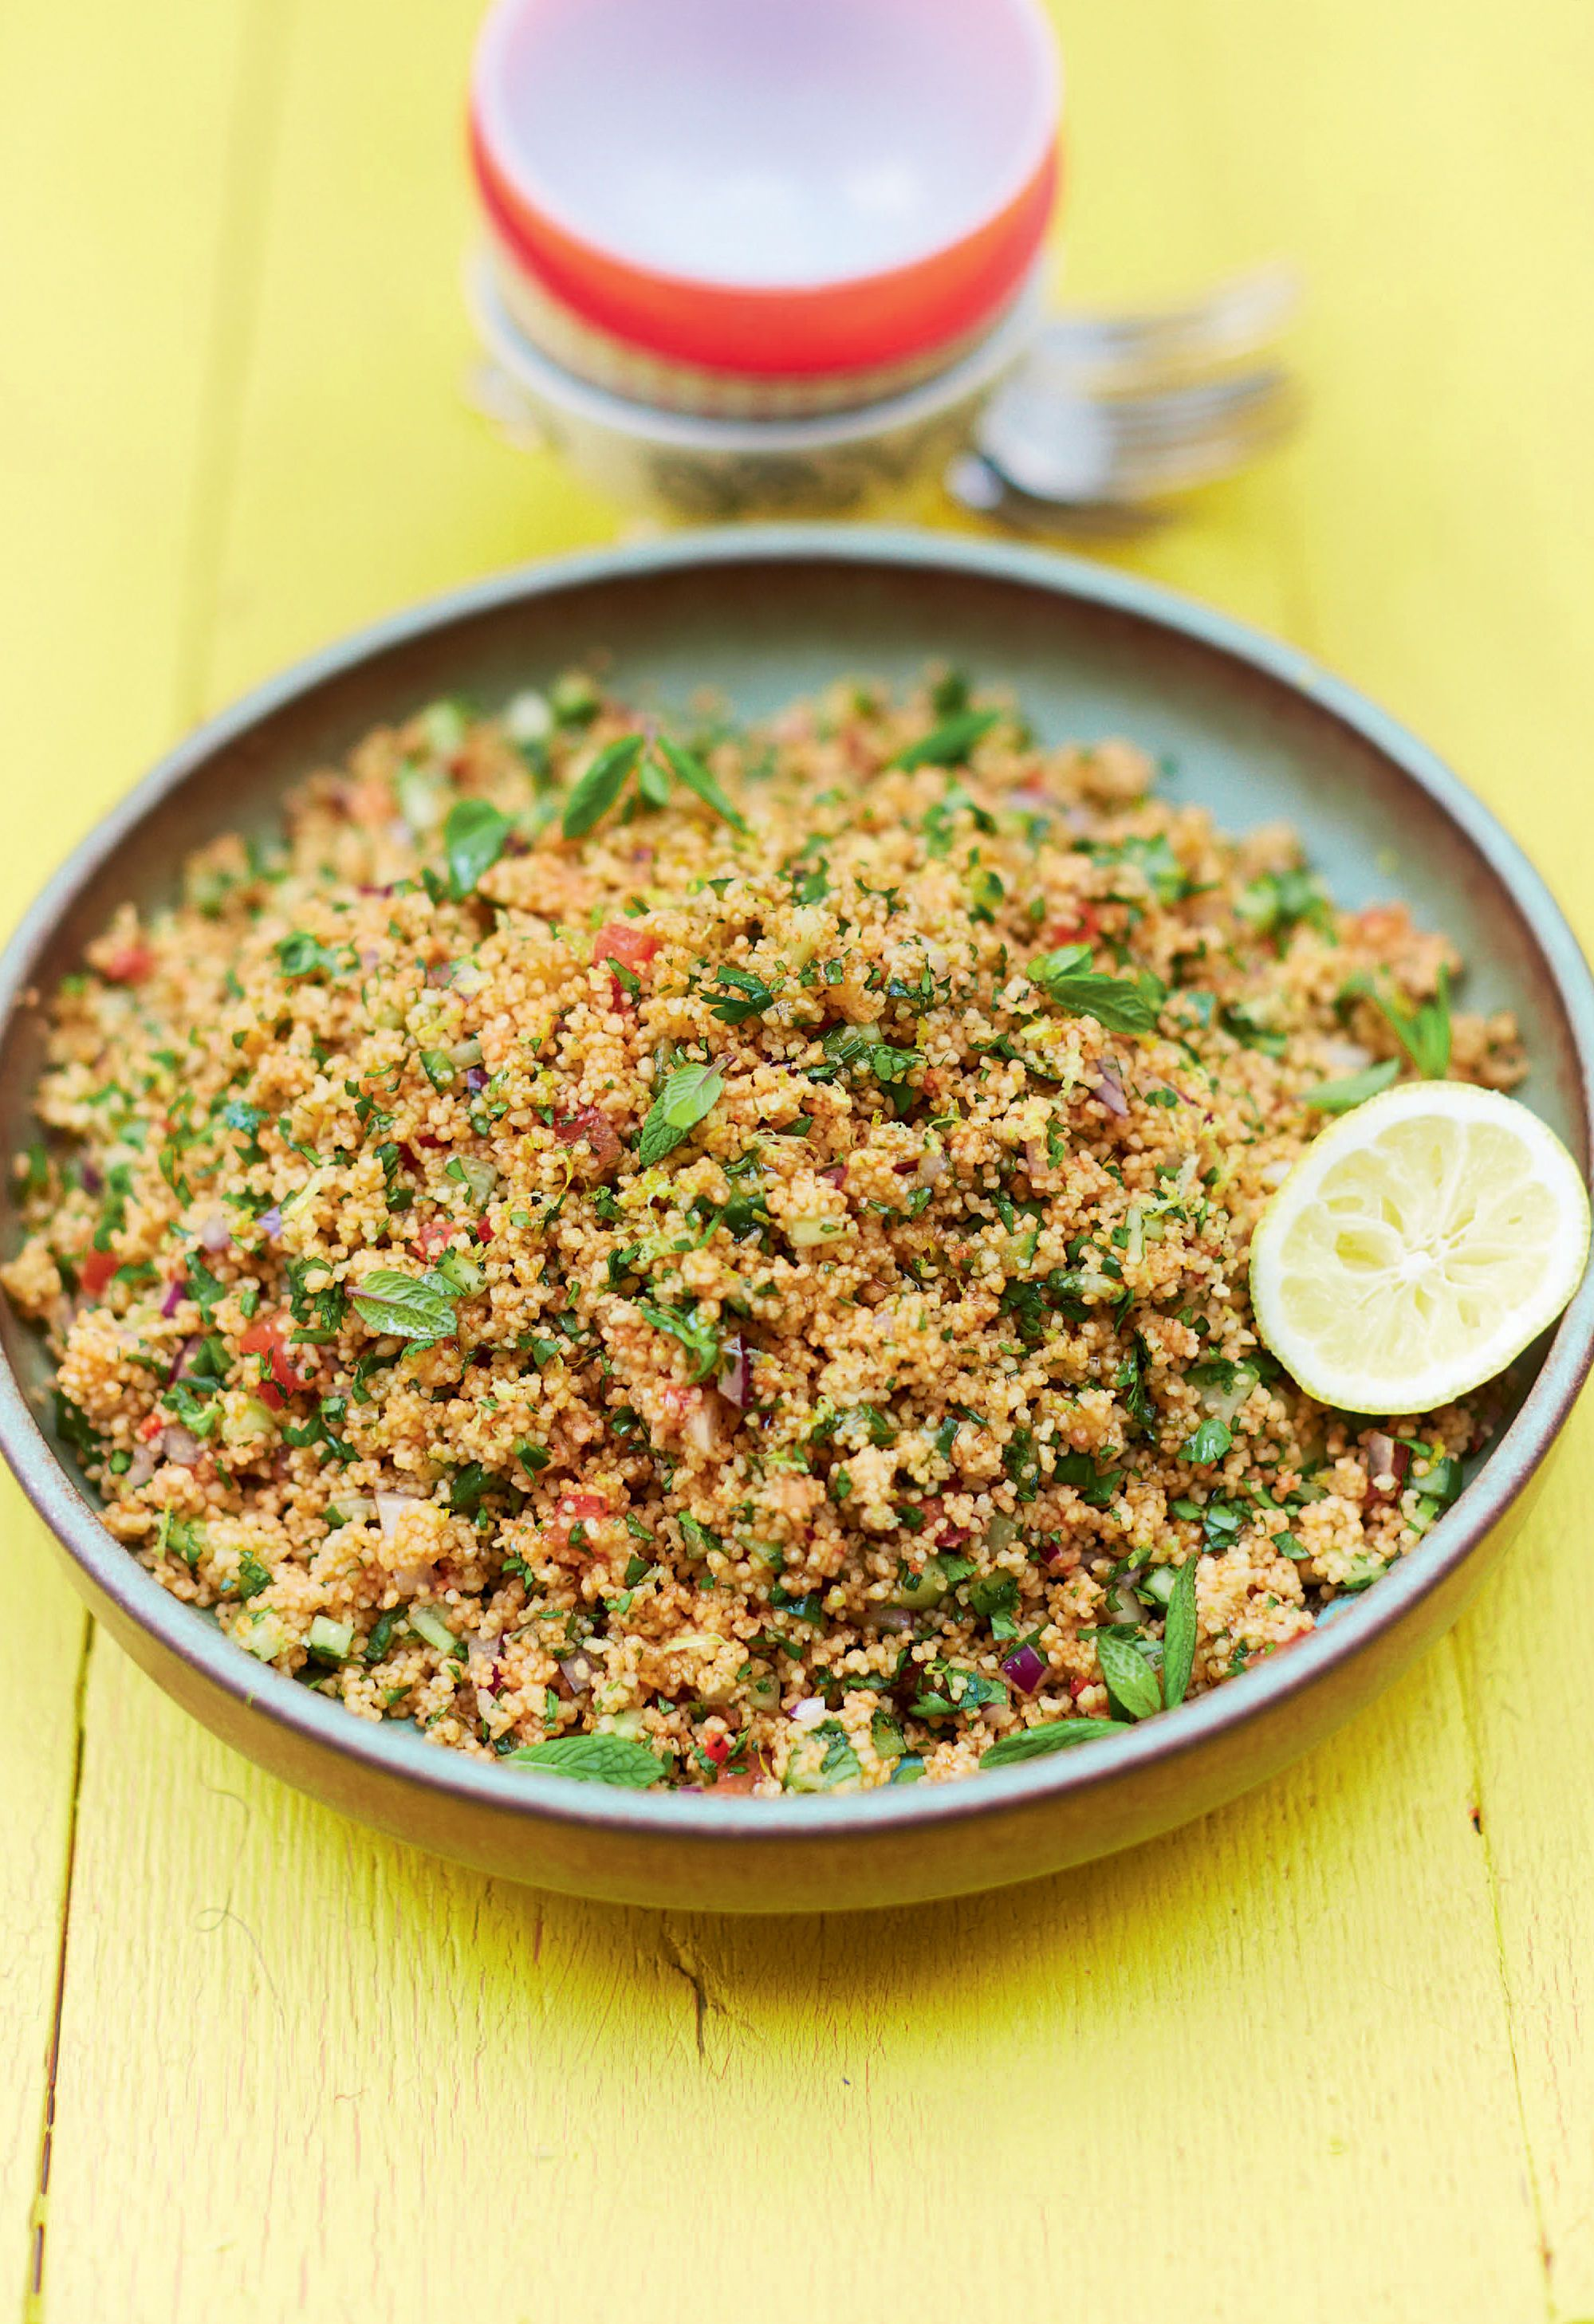 Turkish couscous salad recipe featured in the family cook book by turkish couscous salad recipe featured in the family cook book by kerryann dunlop a jamie oliver food tube book catch her at the big feastival forumfinder Images